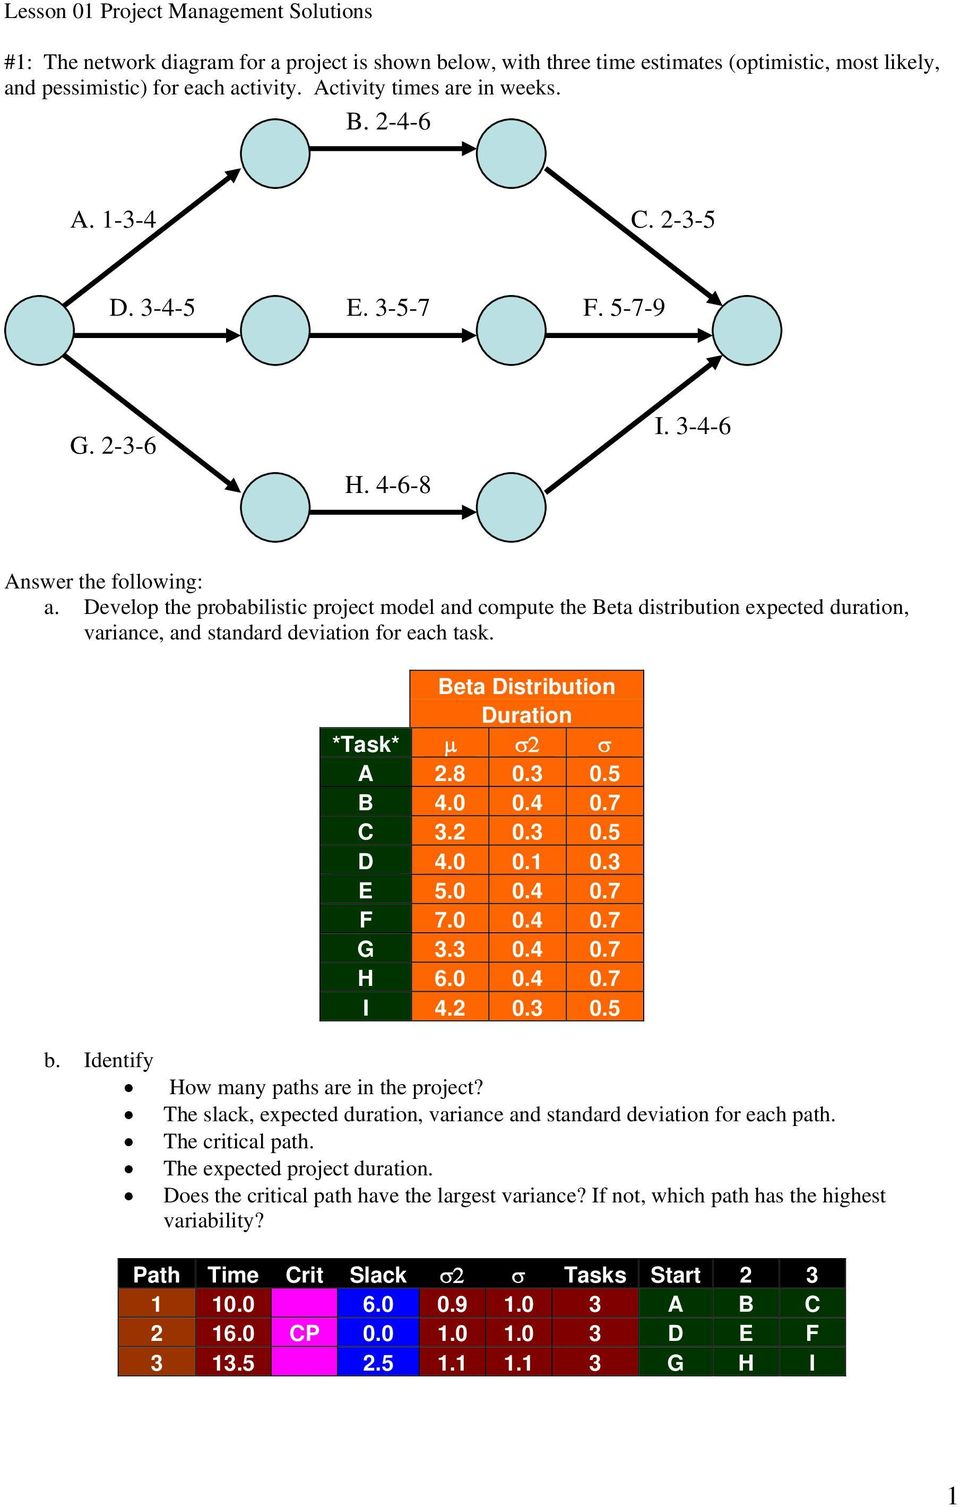 Develop the probabilistic project model and compute the Beta distribution expected duration, variance, and standard deviation for each task. Beta Distribution Duration *Task* μ σ2 σ A 2.8 0.3 0.5 B 4.